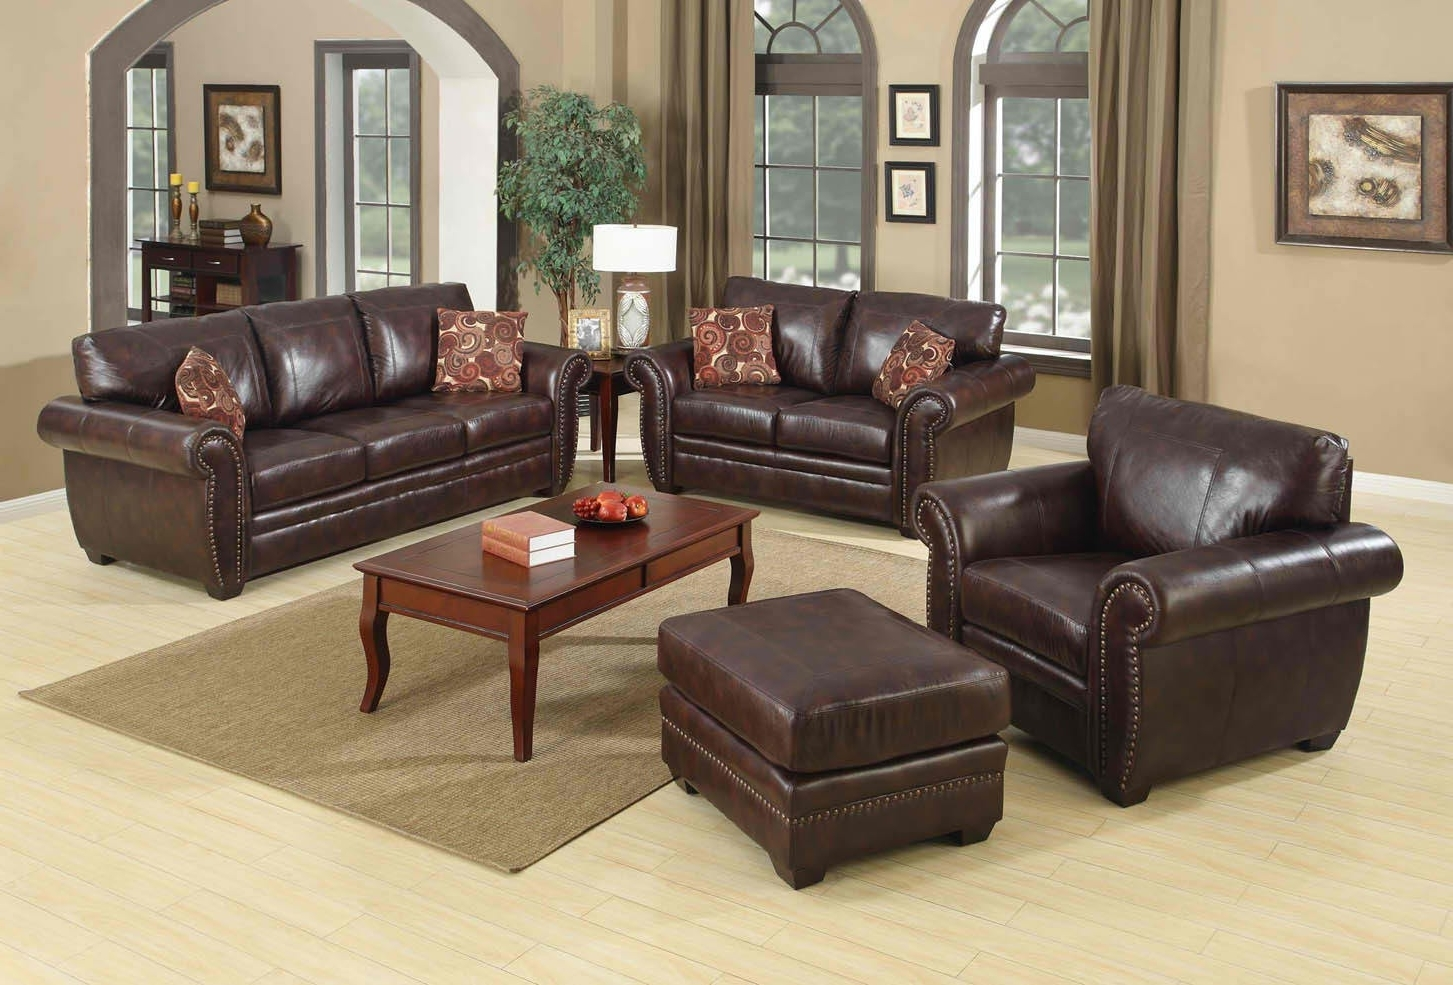 Brown Sofa Chairs Pertaining To Current Brown Sofa With Square Wooden Table Thats The Color Matches With (View 8 of 20)